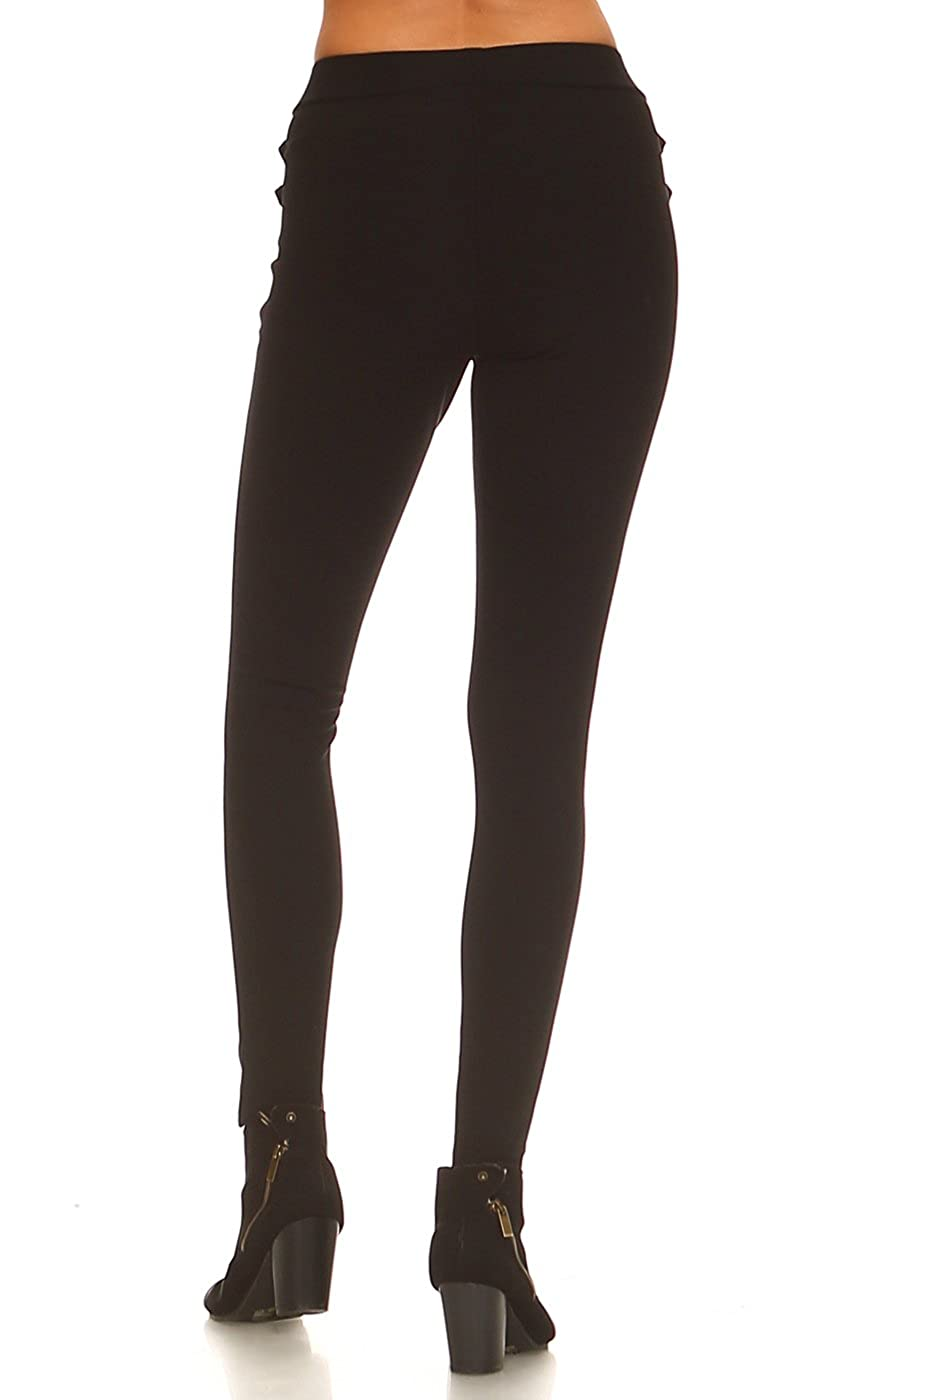 e7ba87a466444 ICONOFLASH Women's Ponte Knit Stretch Skinny Dress Pants with Faux Leather  Accent Detail at Amazon Women's Clothing store: